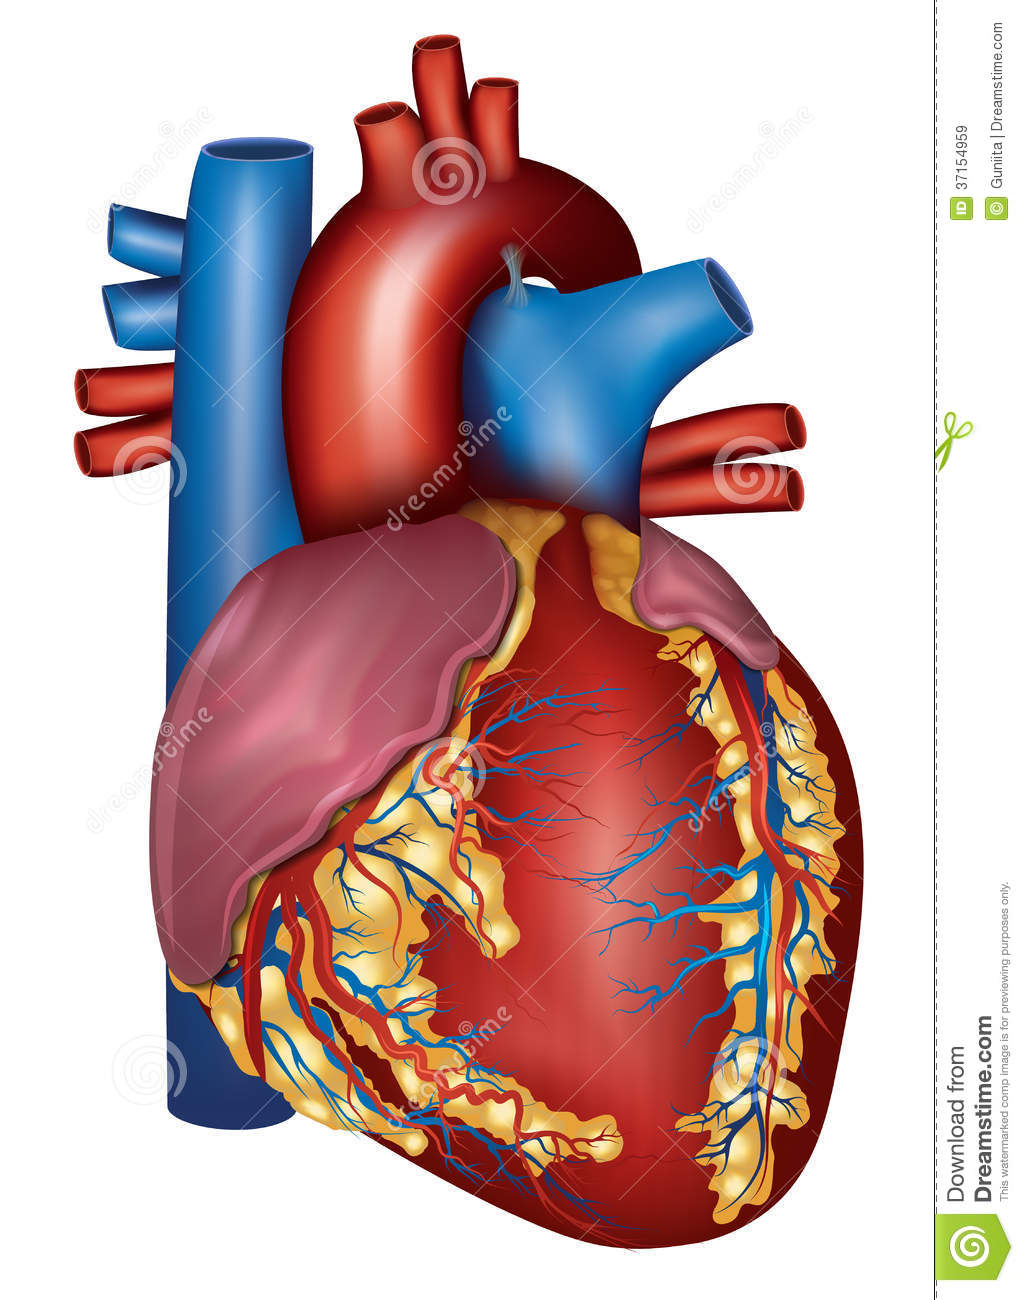 Human heart detailed anatomy colorful design stock vector download human heart detailed anatomy colorful design stock vector illustration of diagram blood ccuart Images